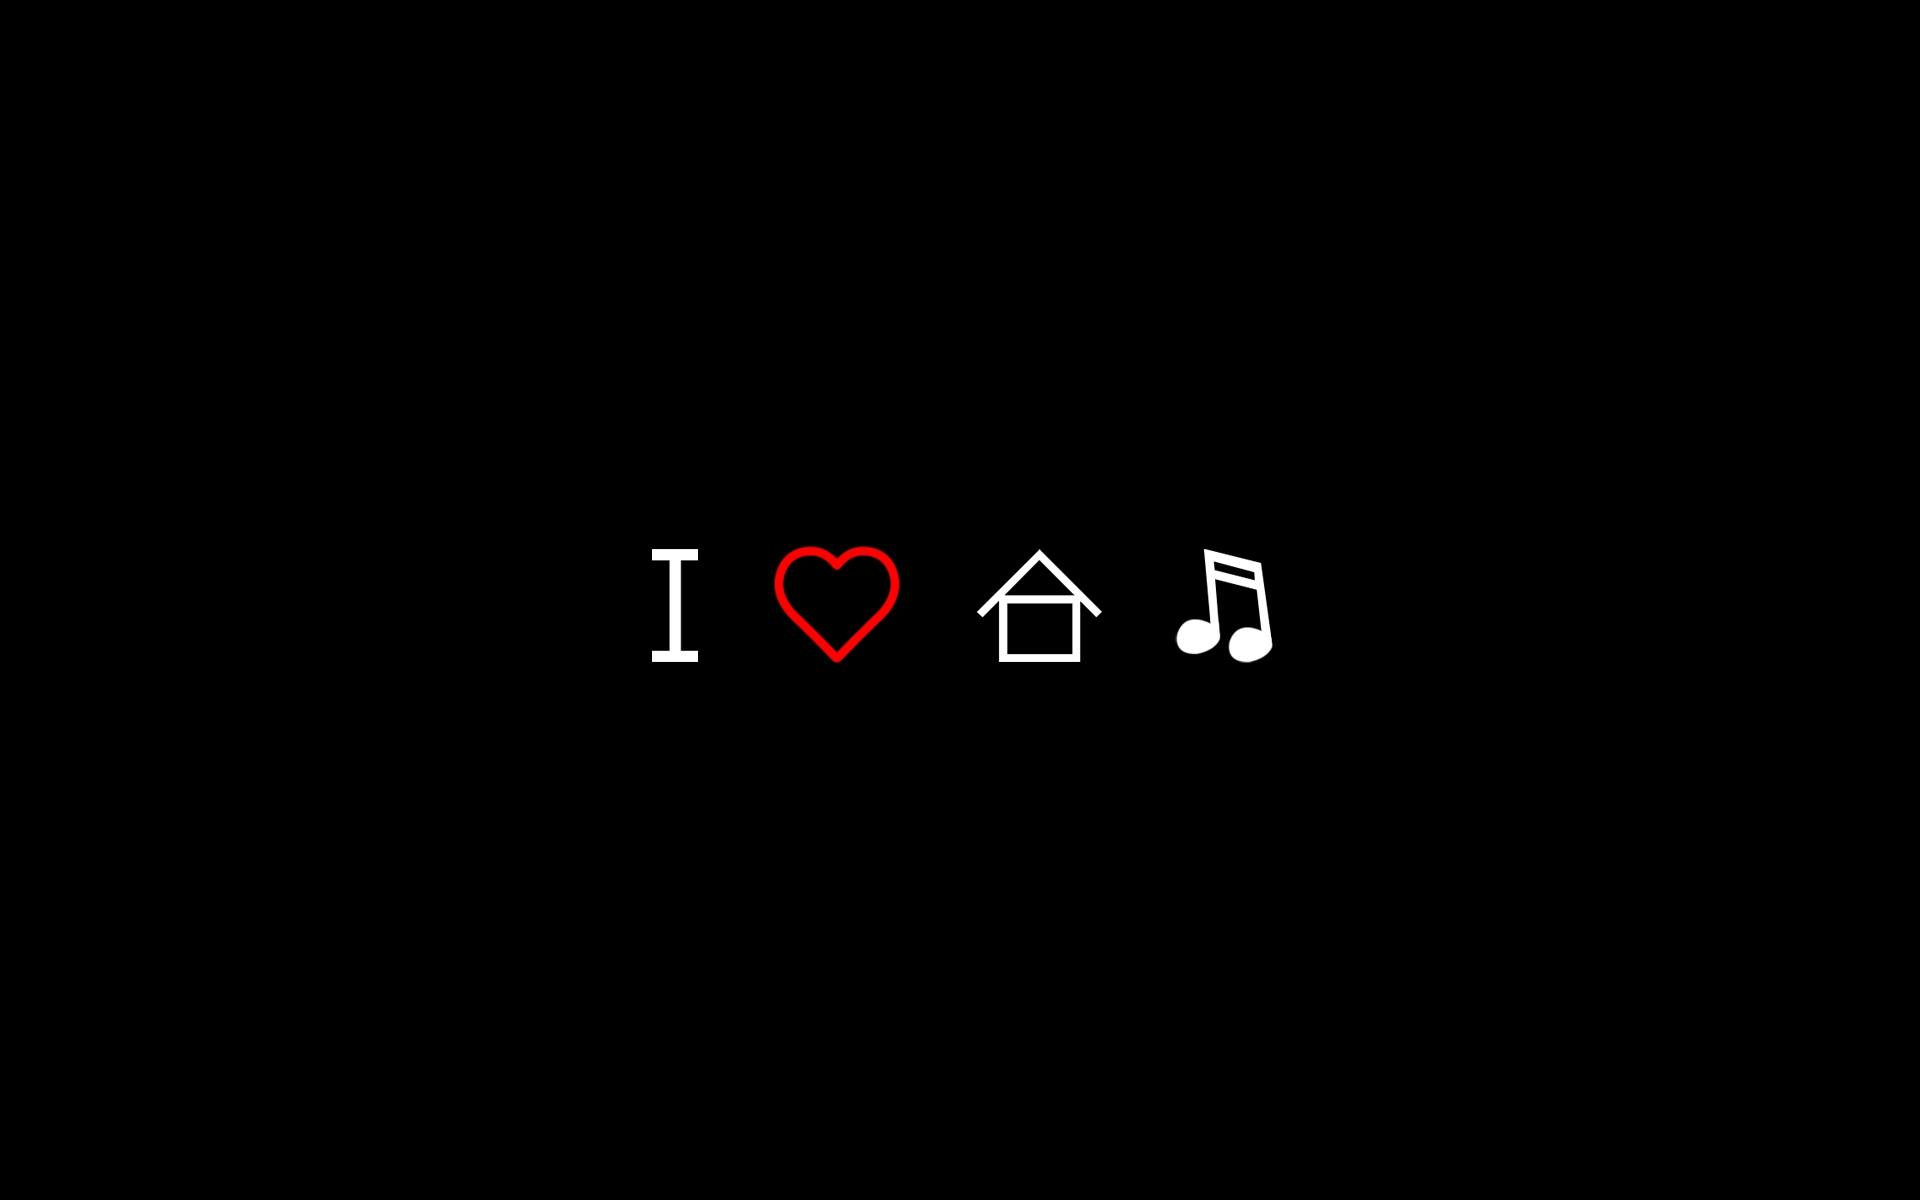 Download the I Love House Music Wallpaper, I Love House Music iPhone